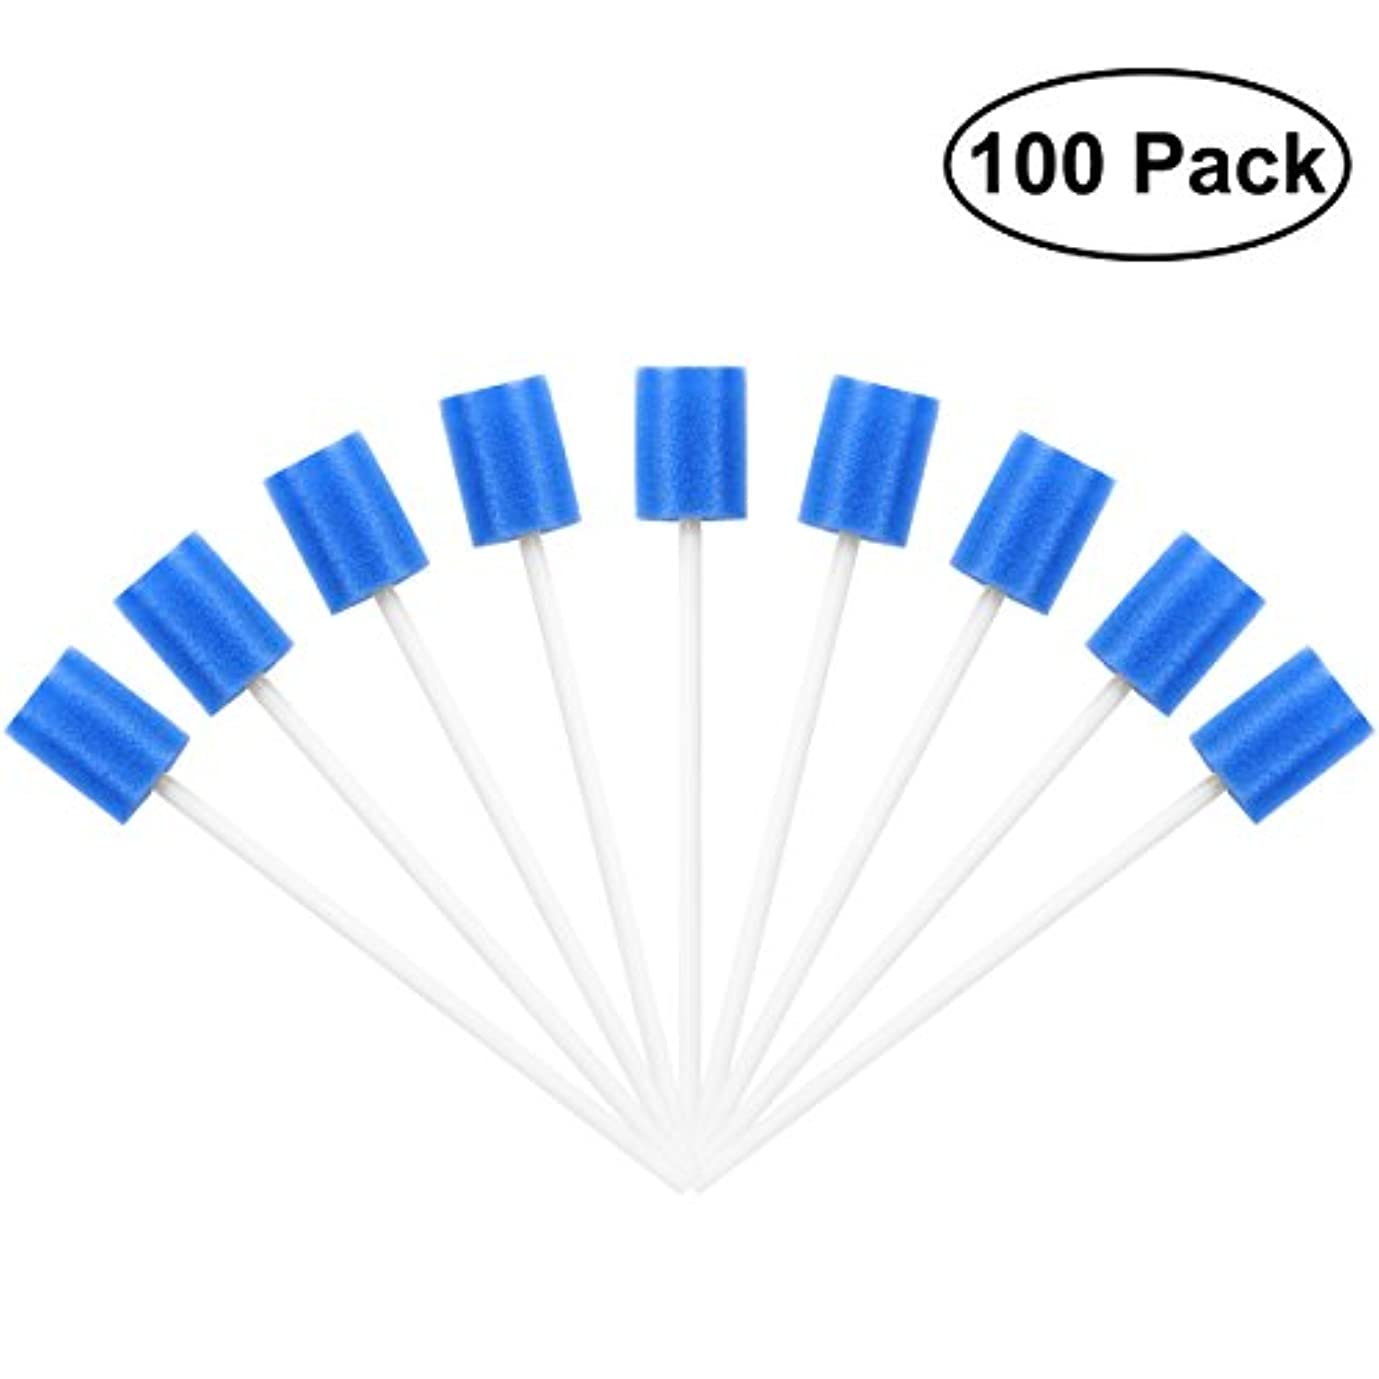 飲料起きて事業内容ROSENICE Mouth Sponges Dental Swabs 100Pcs Disposable Oral Care Swabs (Blue)